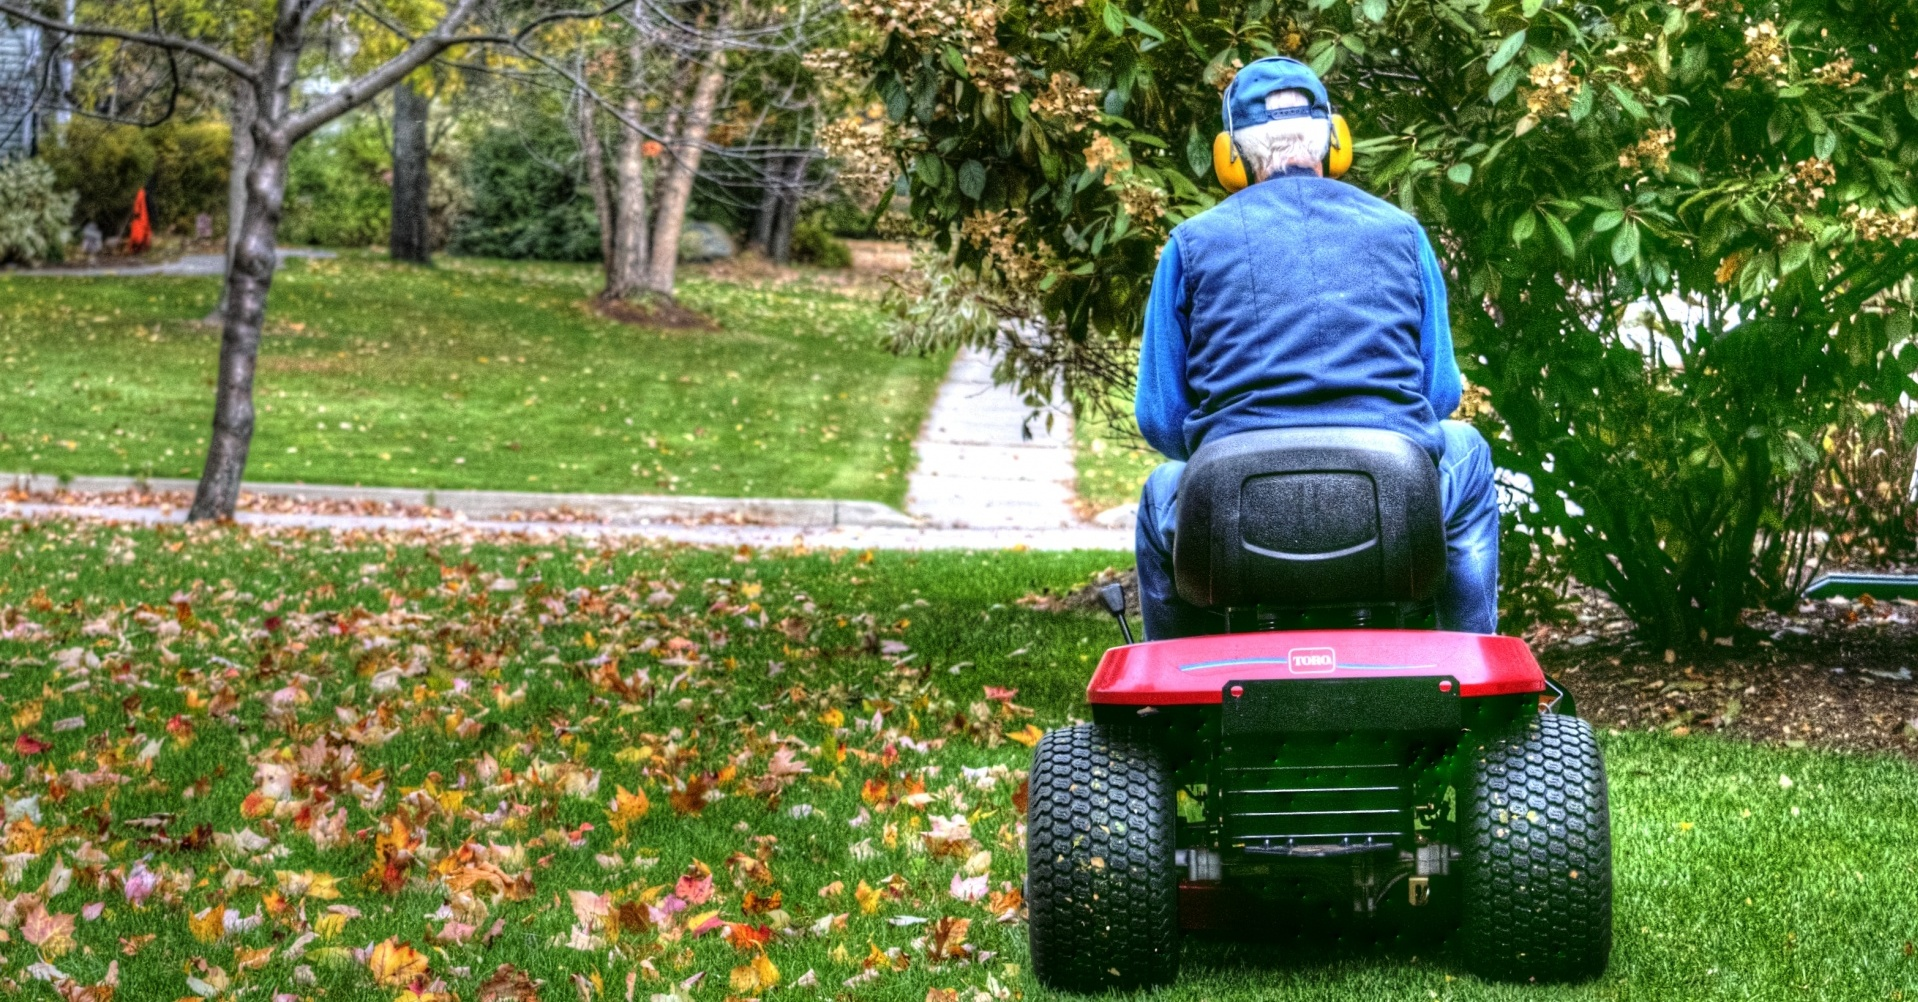 A Man Riding Lawn Mower With New Battery